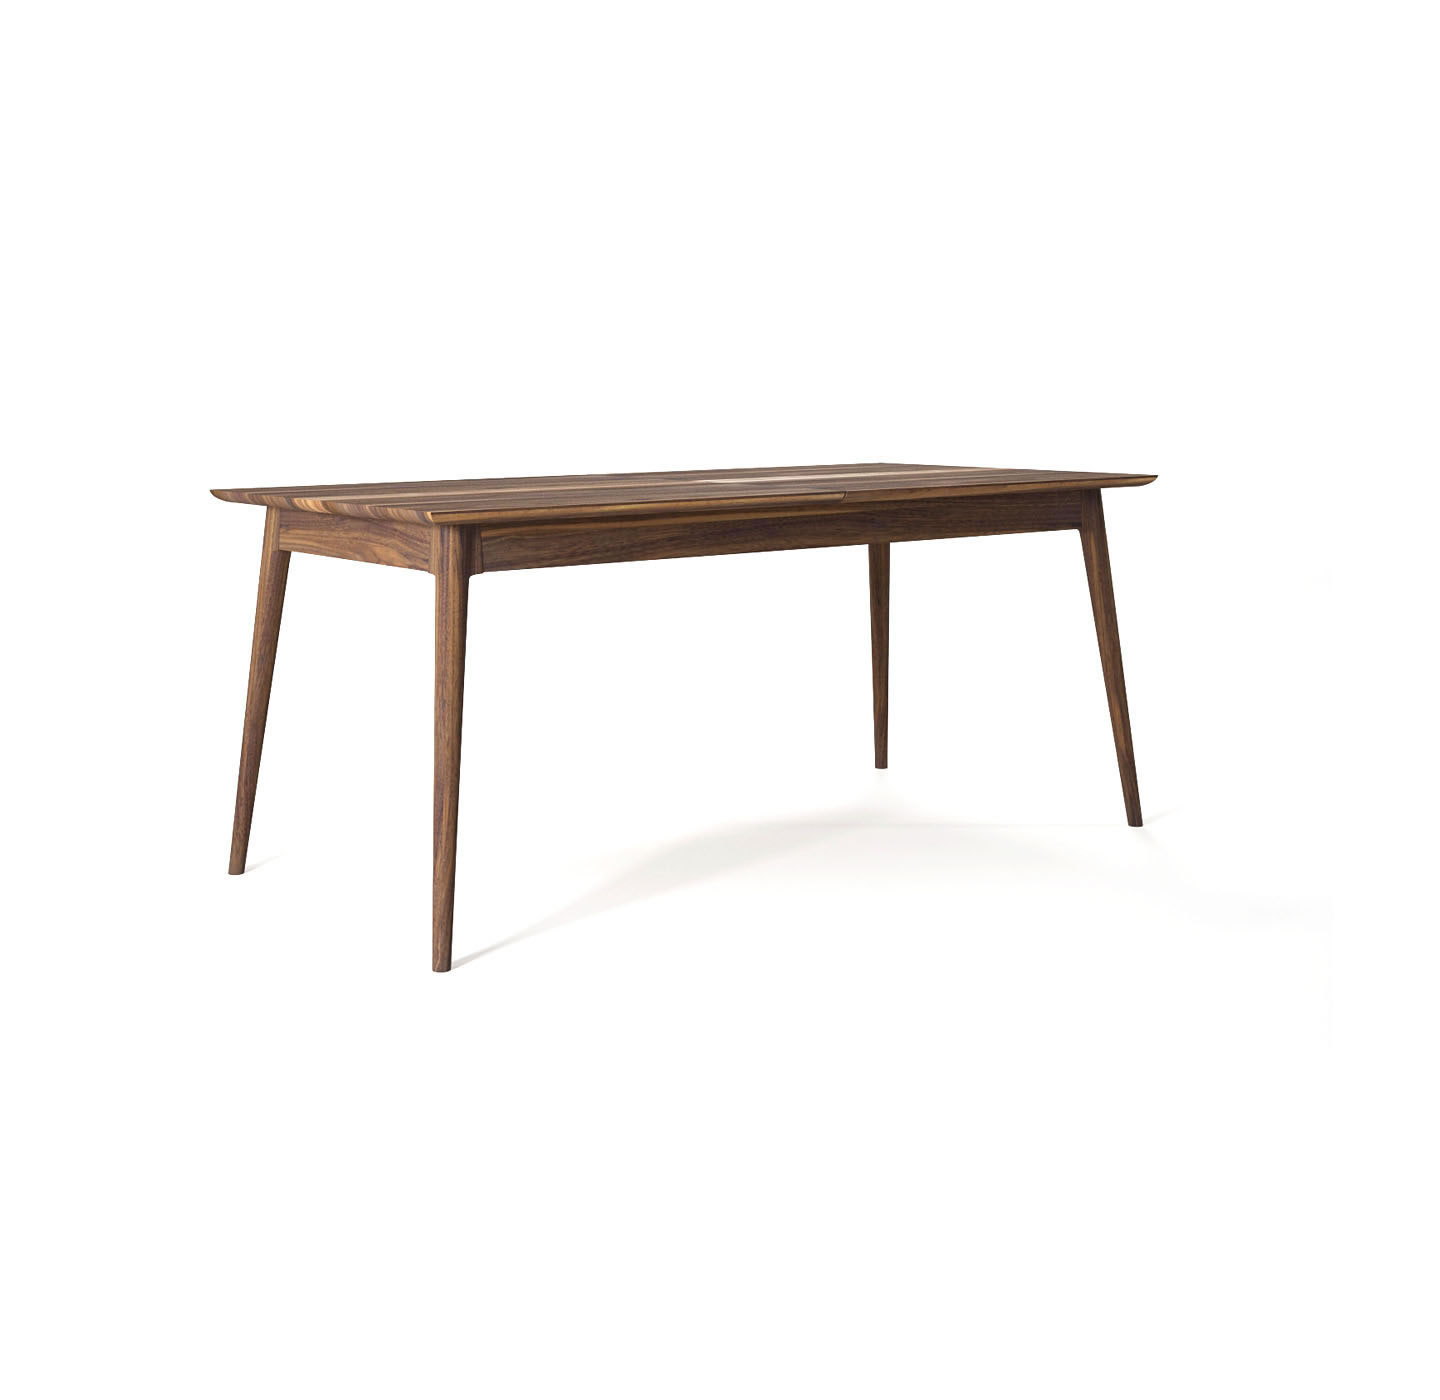 Vintage Solid Walnut Extension Dining Table Mikaza Meubles Modernes Montreal Modern Furniture